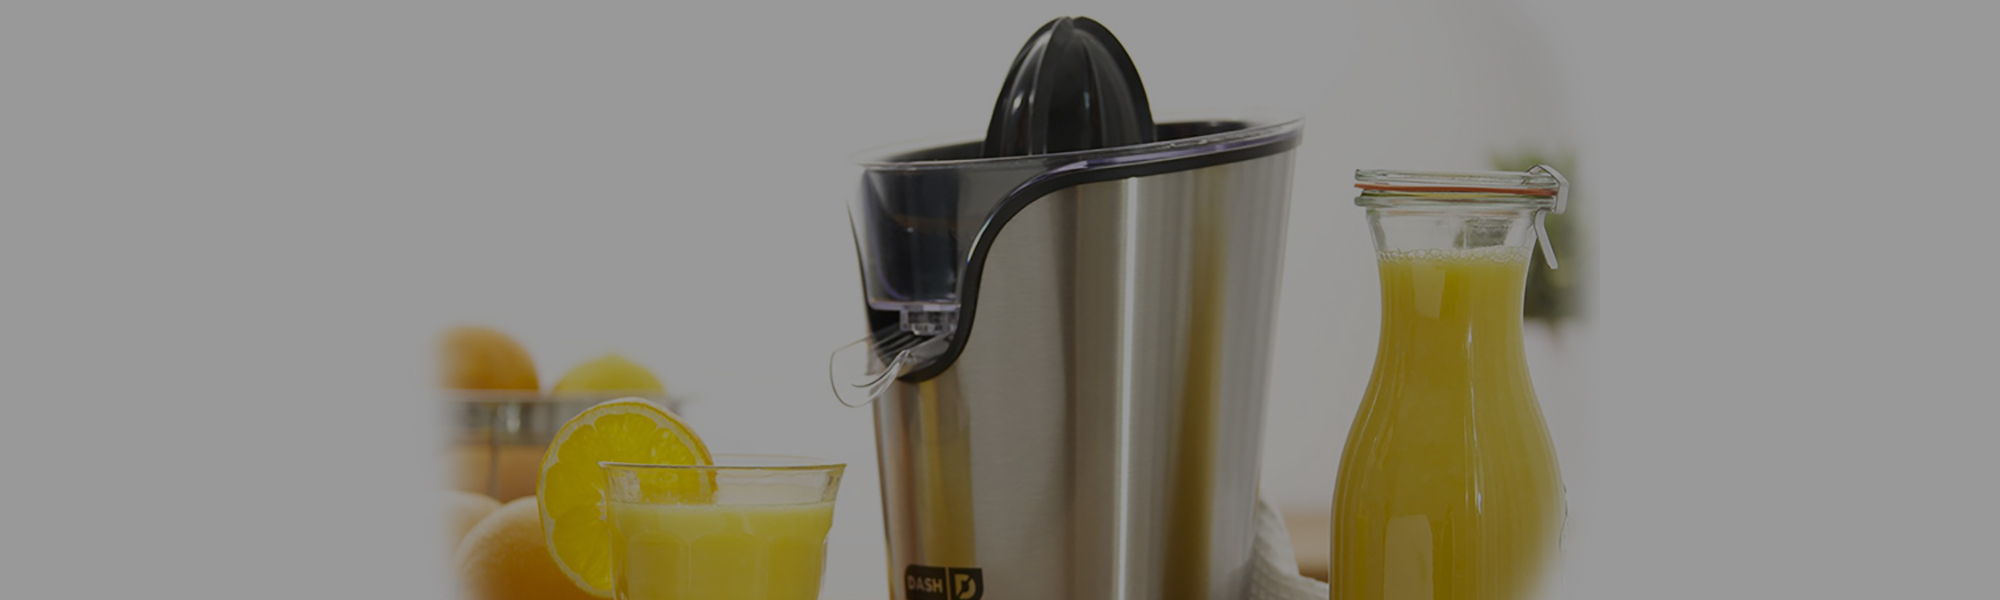 Breville 800CPXL Stainless Steel<br>Motorized Citrus Press